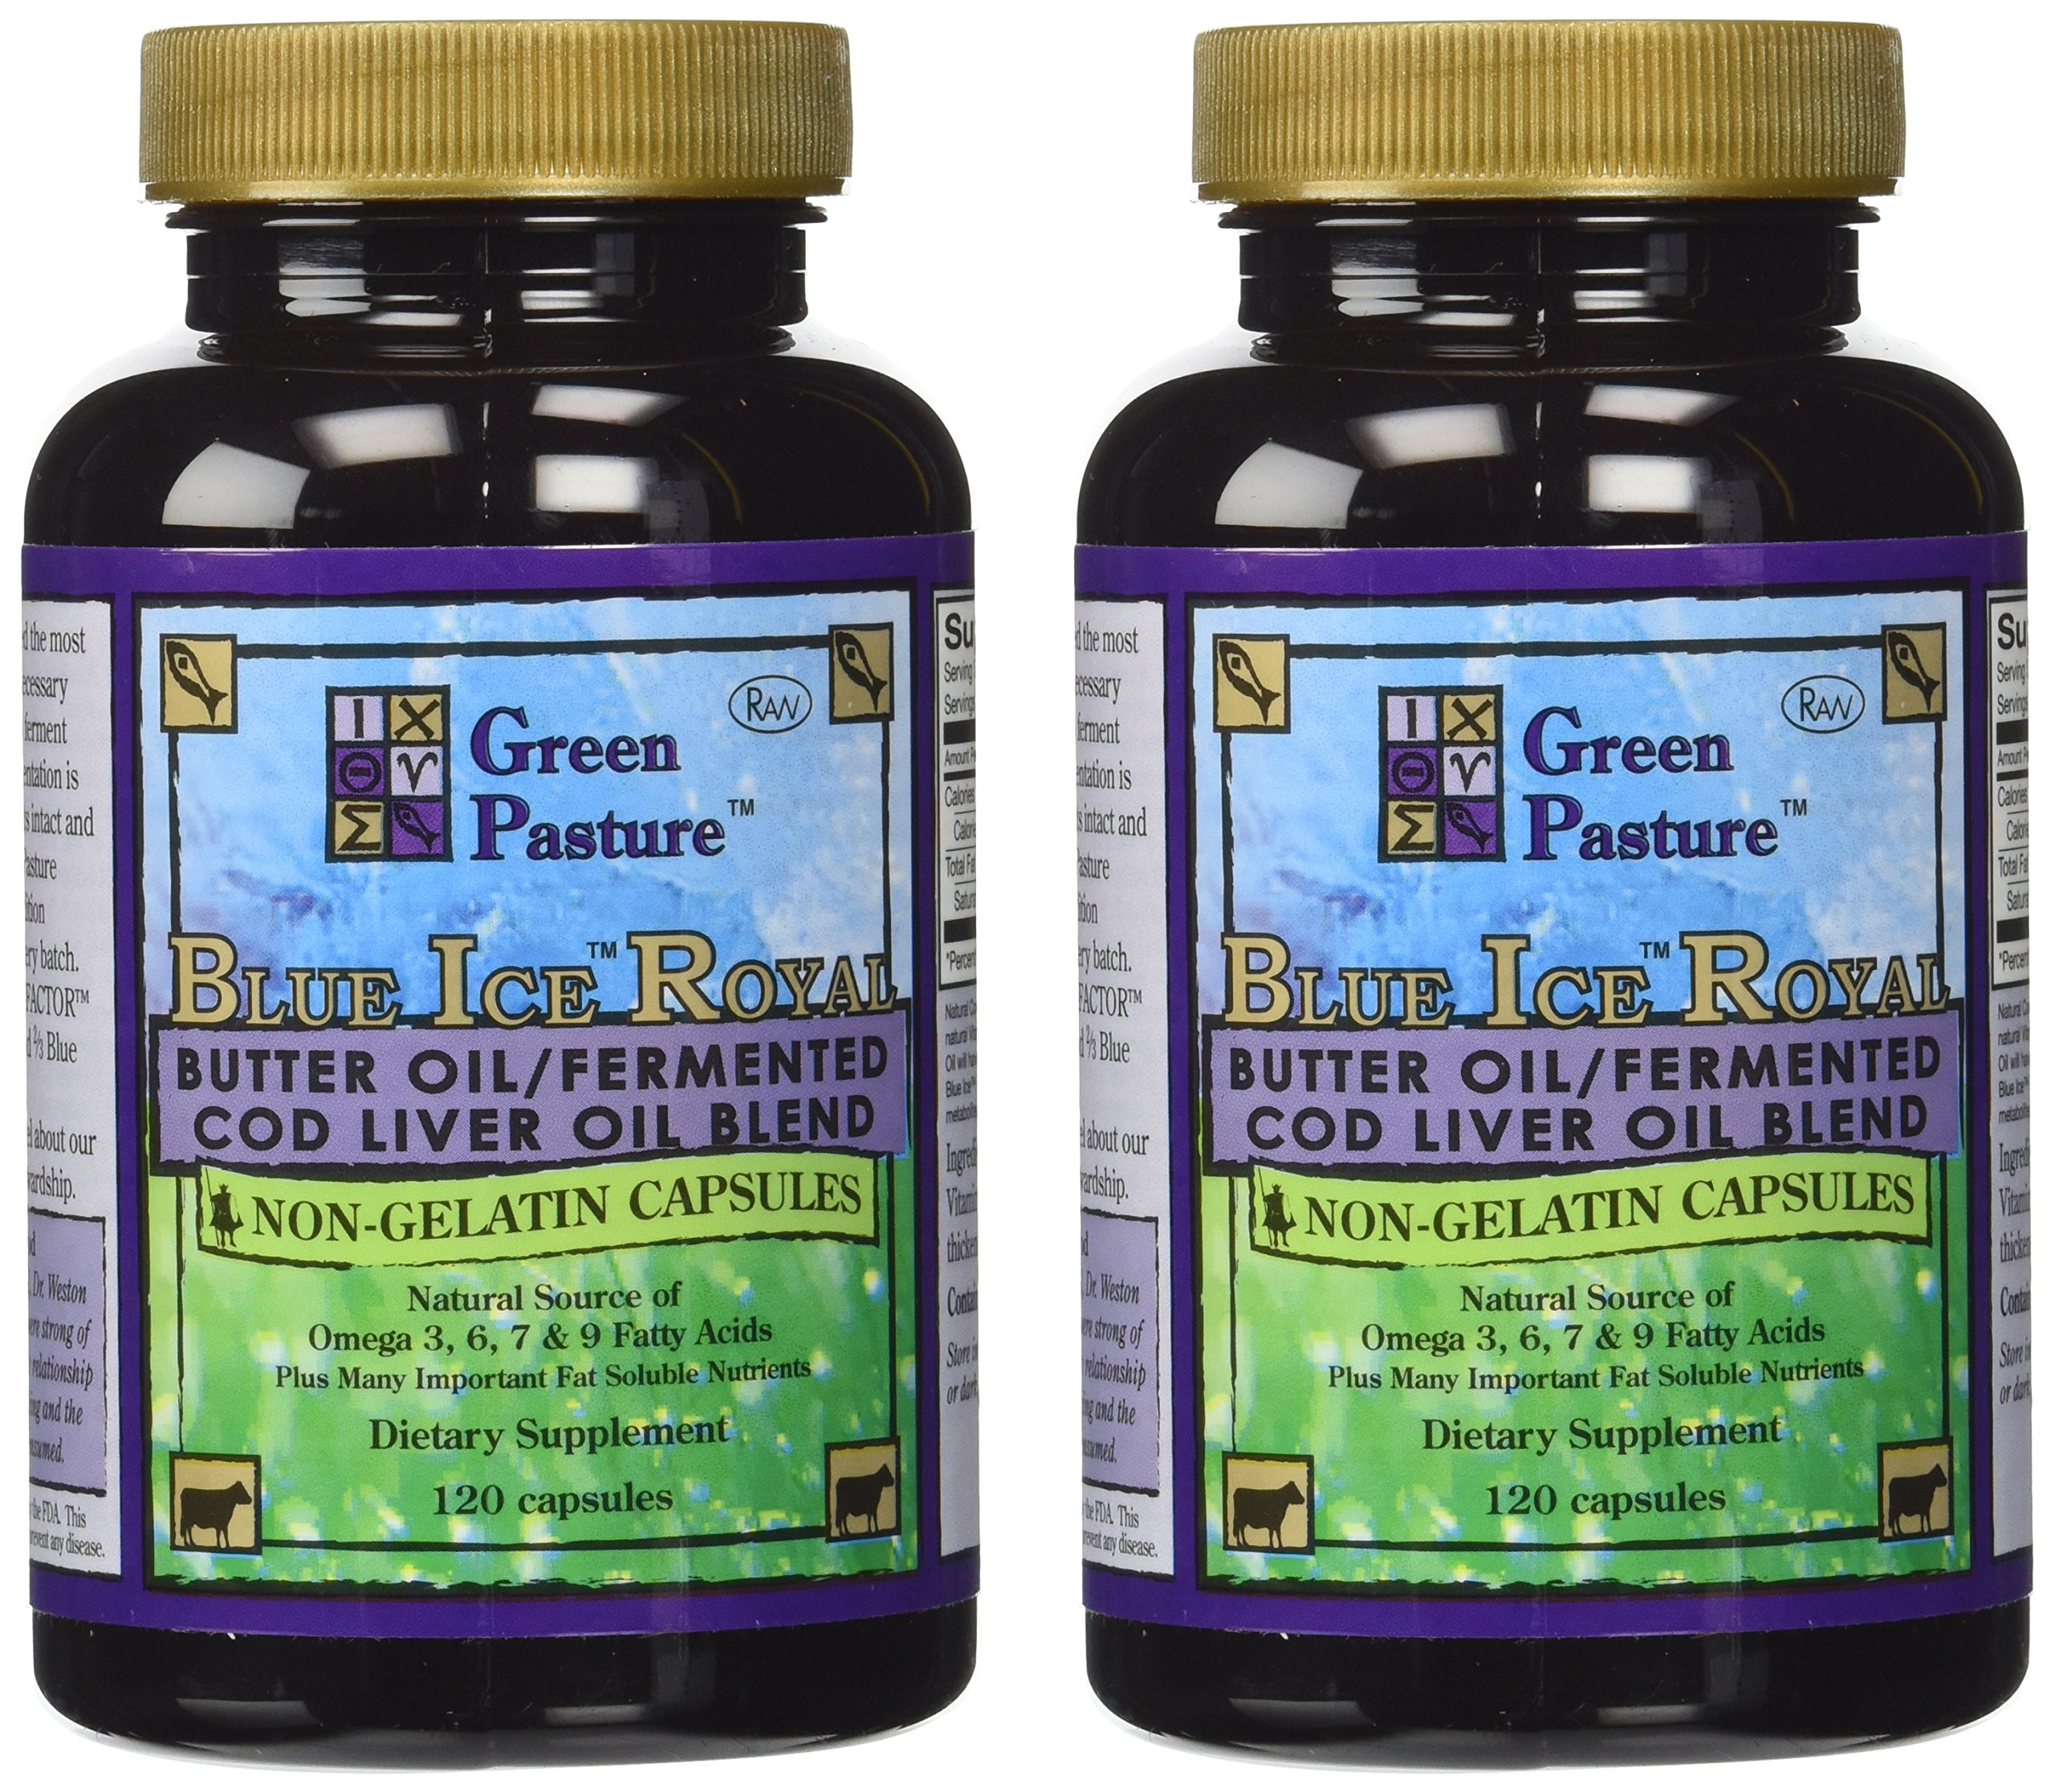 "Blue Ice Royal Butter Oil / Fermented Cod Liver Oil Blend (240 Capsules) ""2 bottles of 120 capsules"""